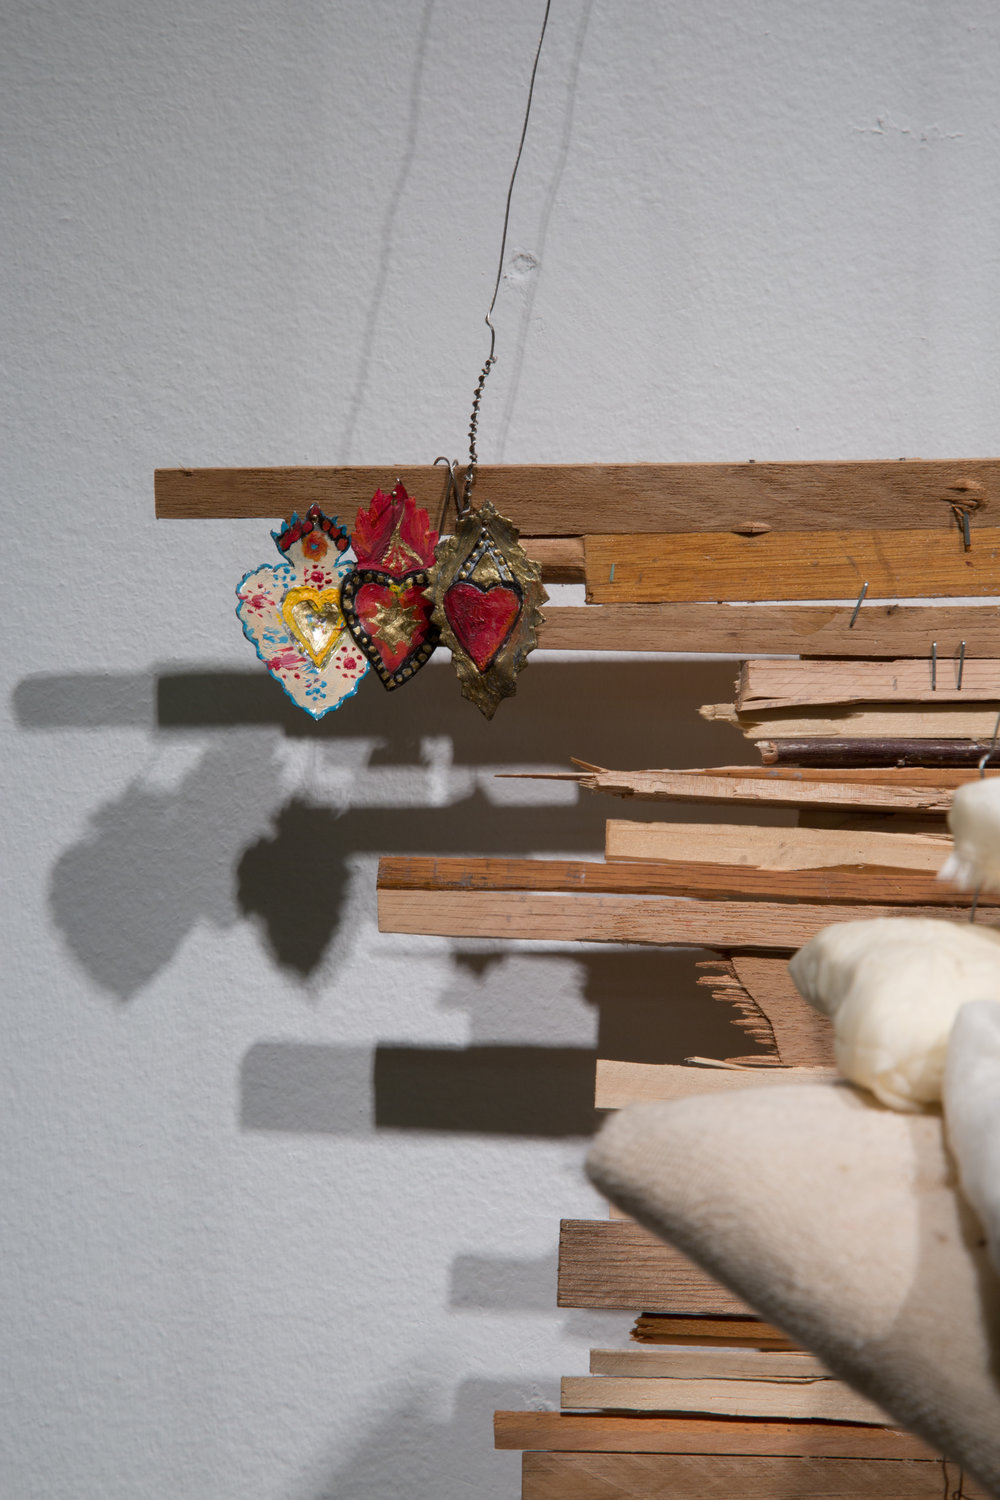 My Bed (Detail, The hearts)